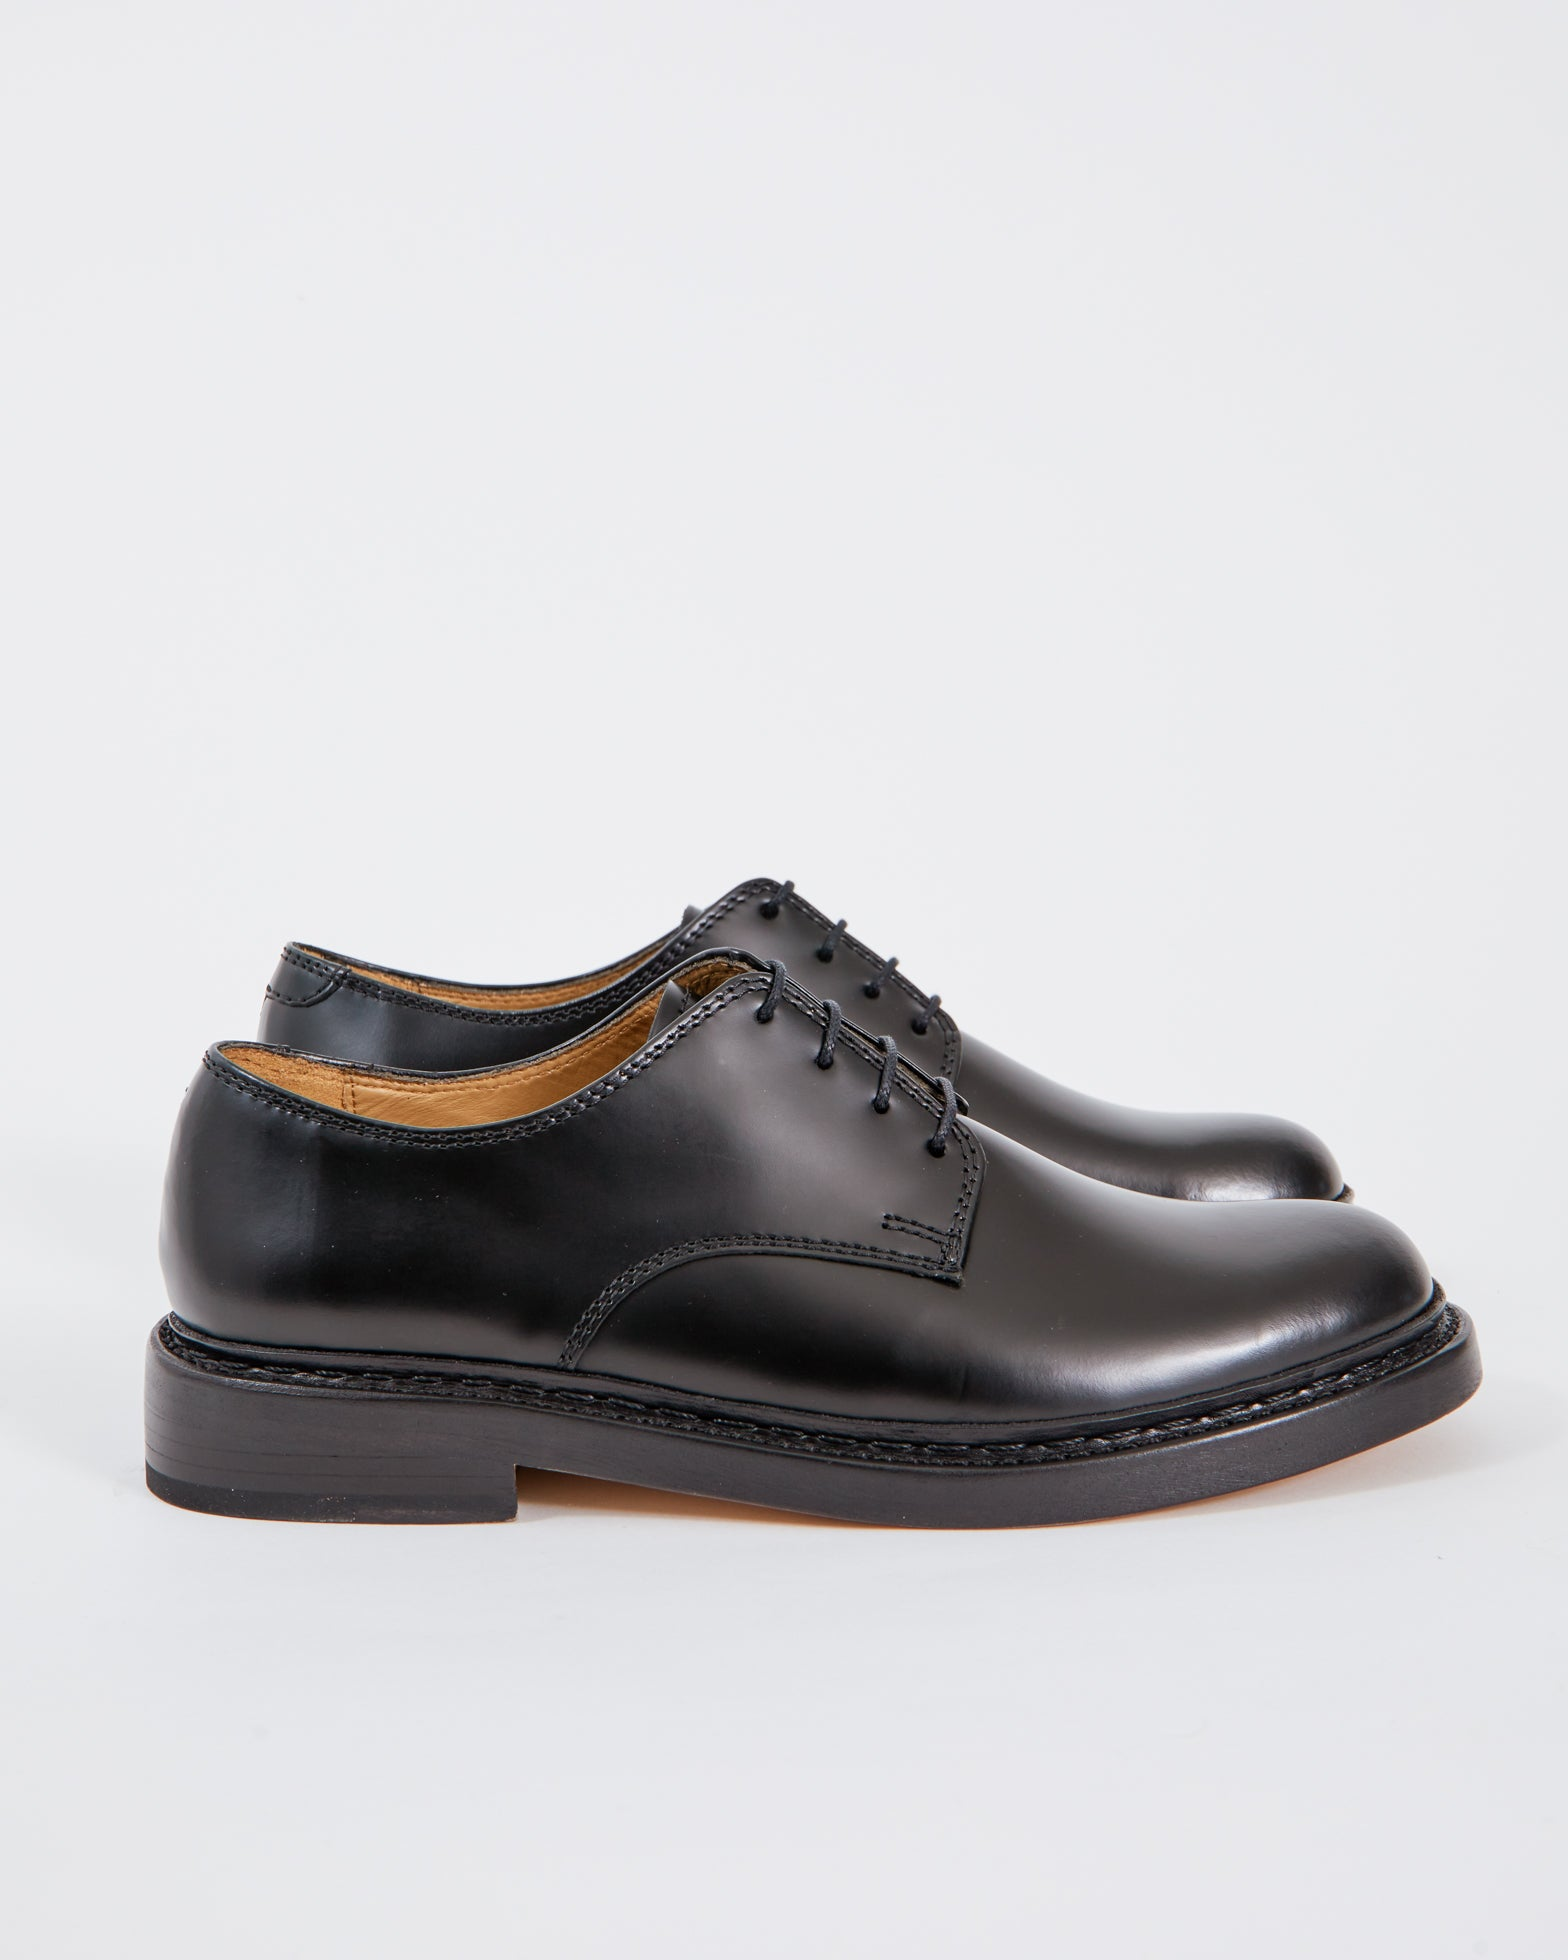 Mohawk General Store | Our Legacy | Uniform Parade Shoe in Black